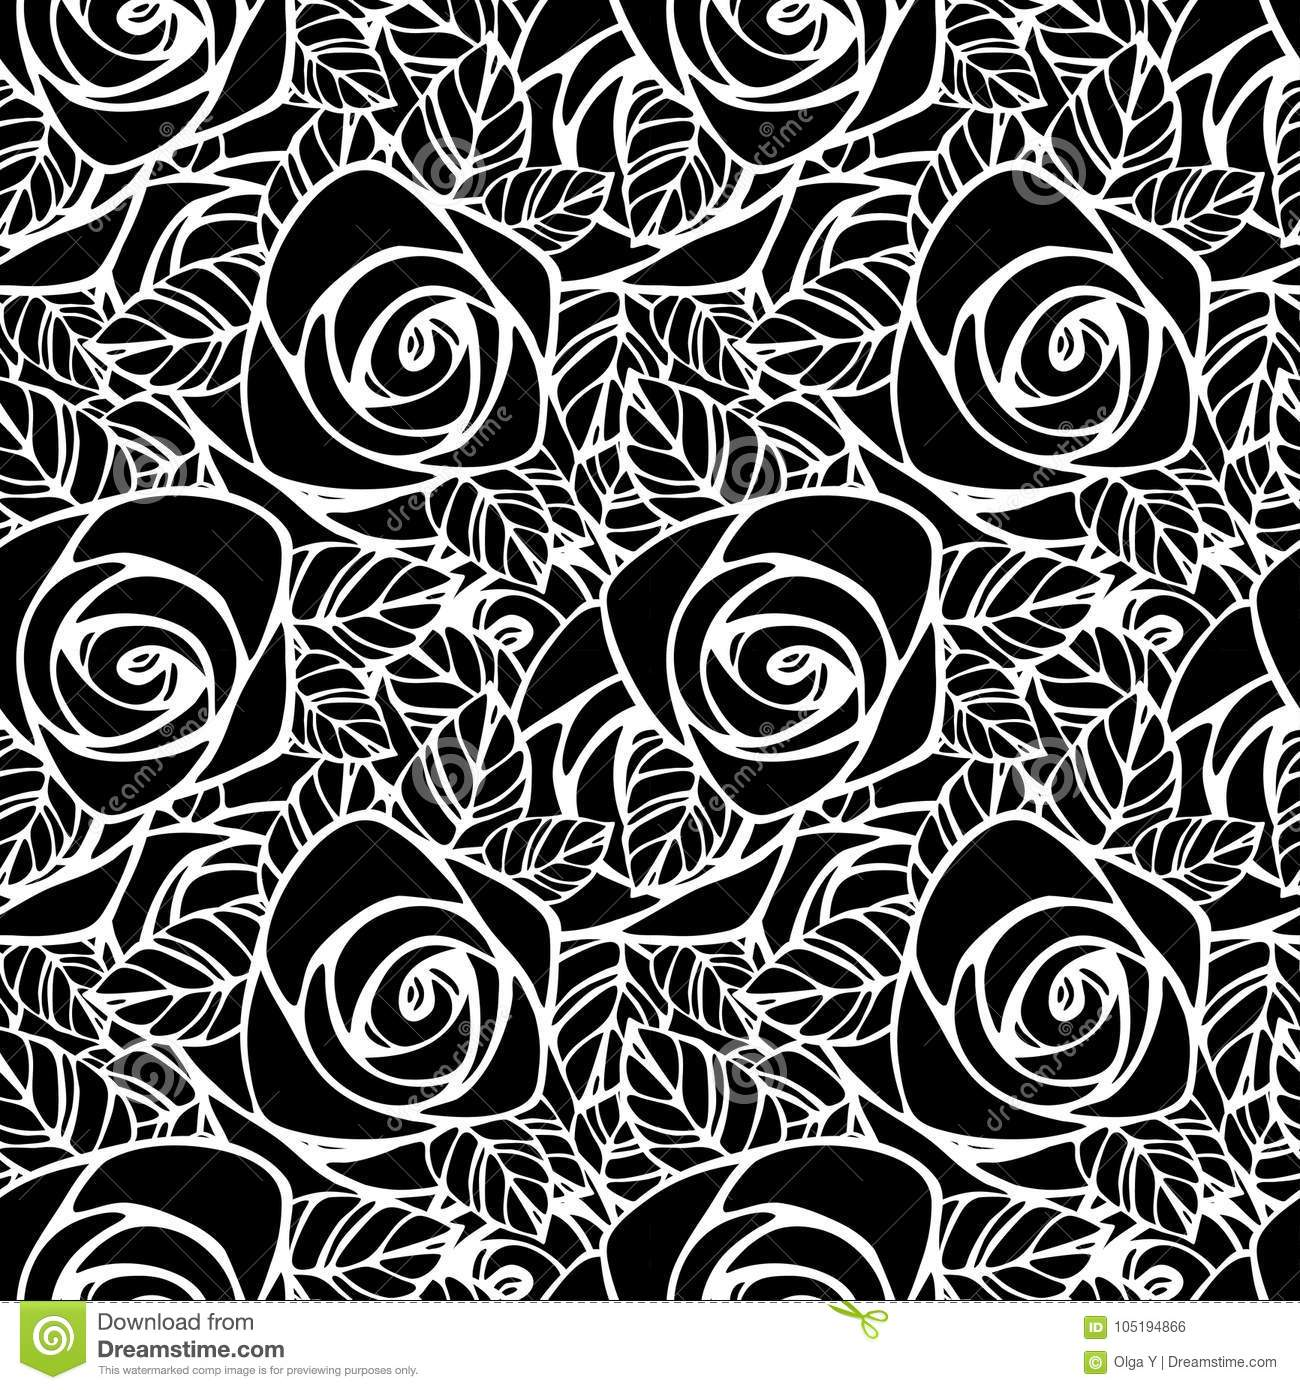 Seamless Pattern With Black And White Rose Silhouette Floral